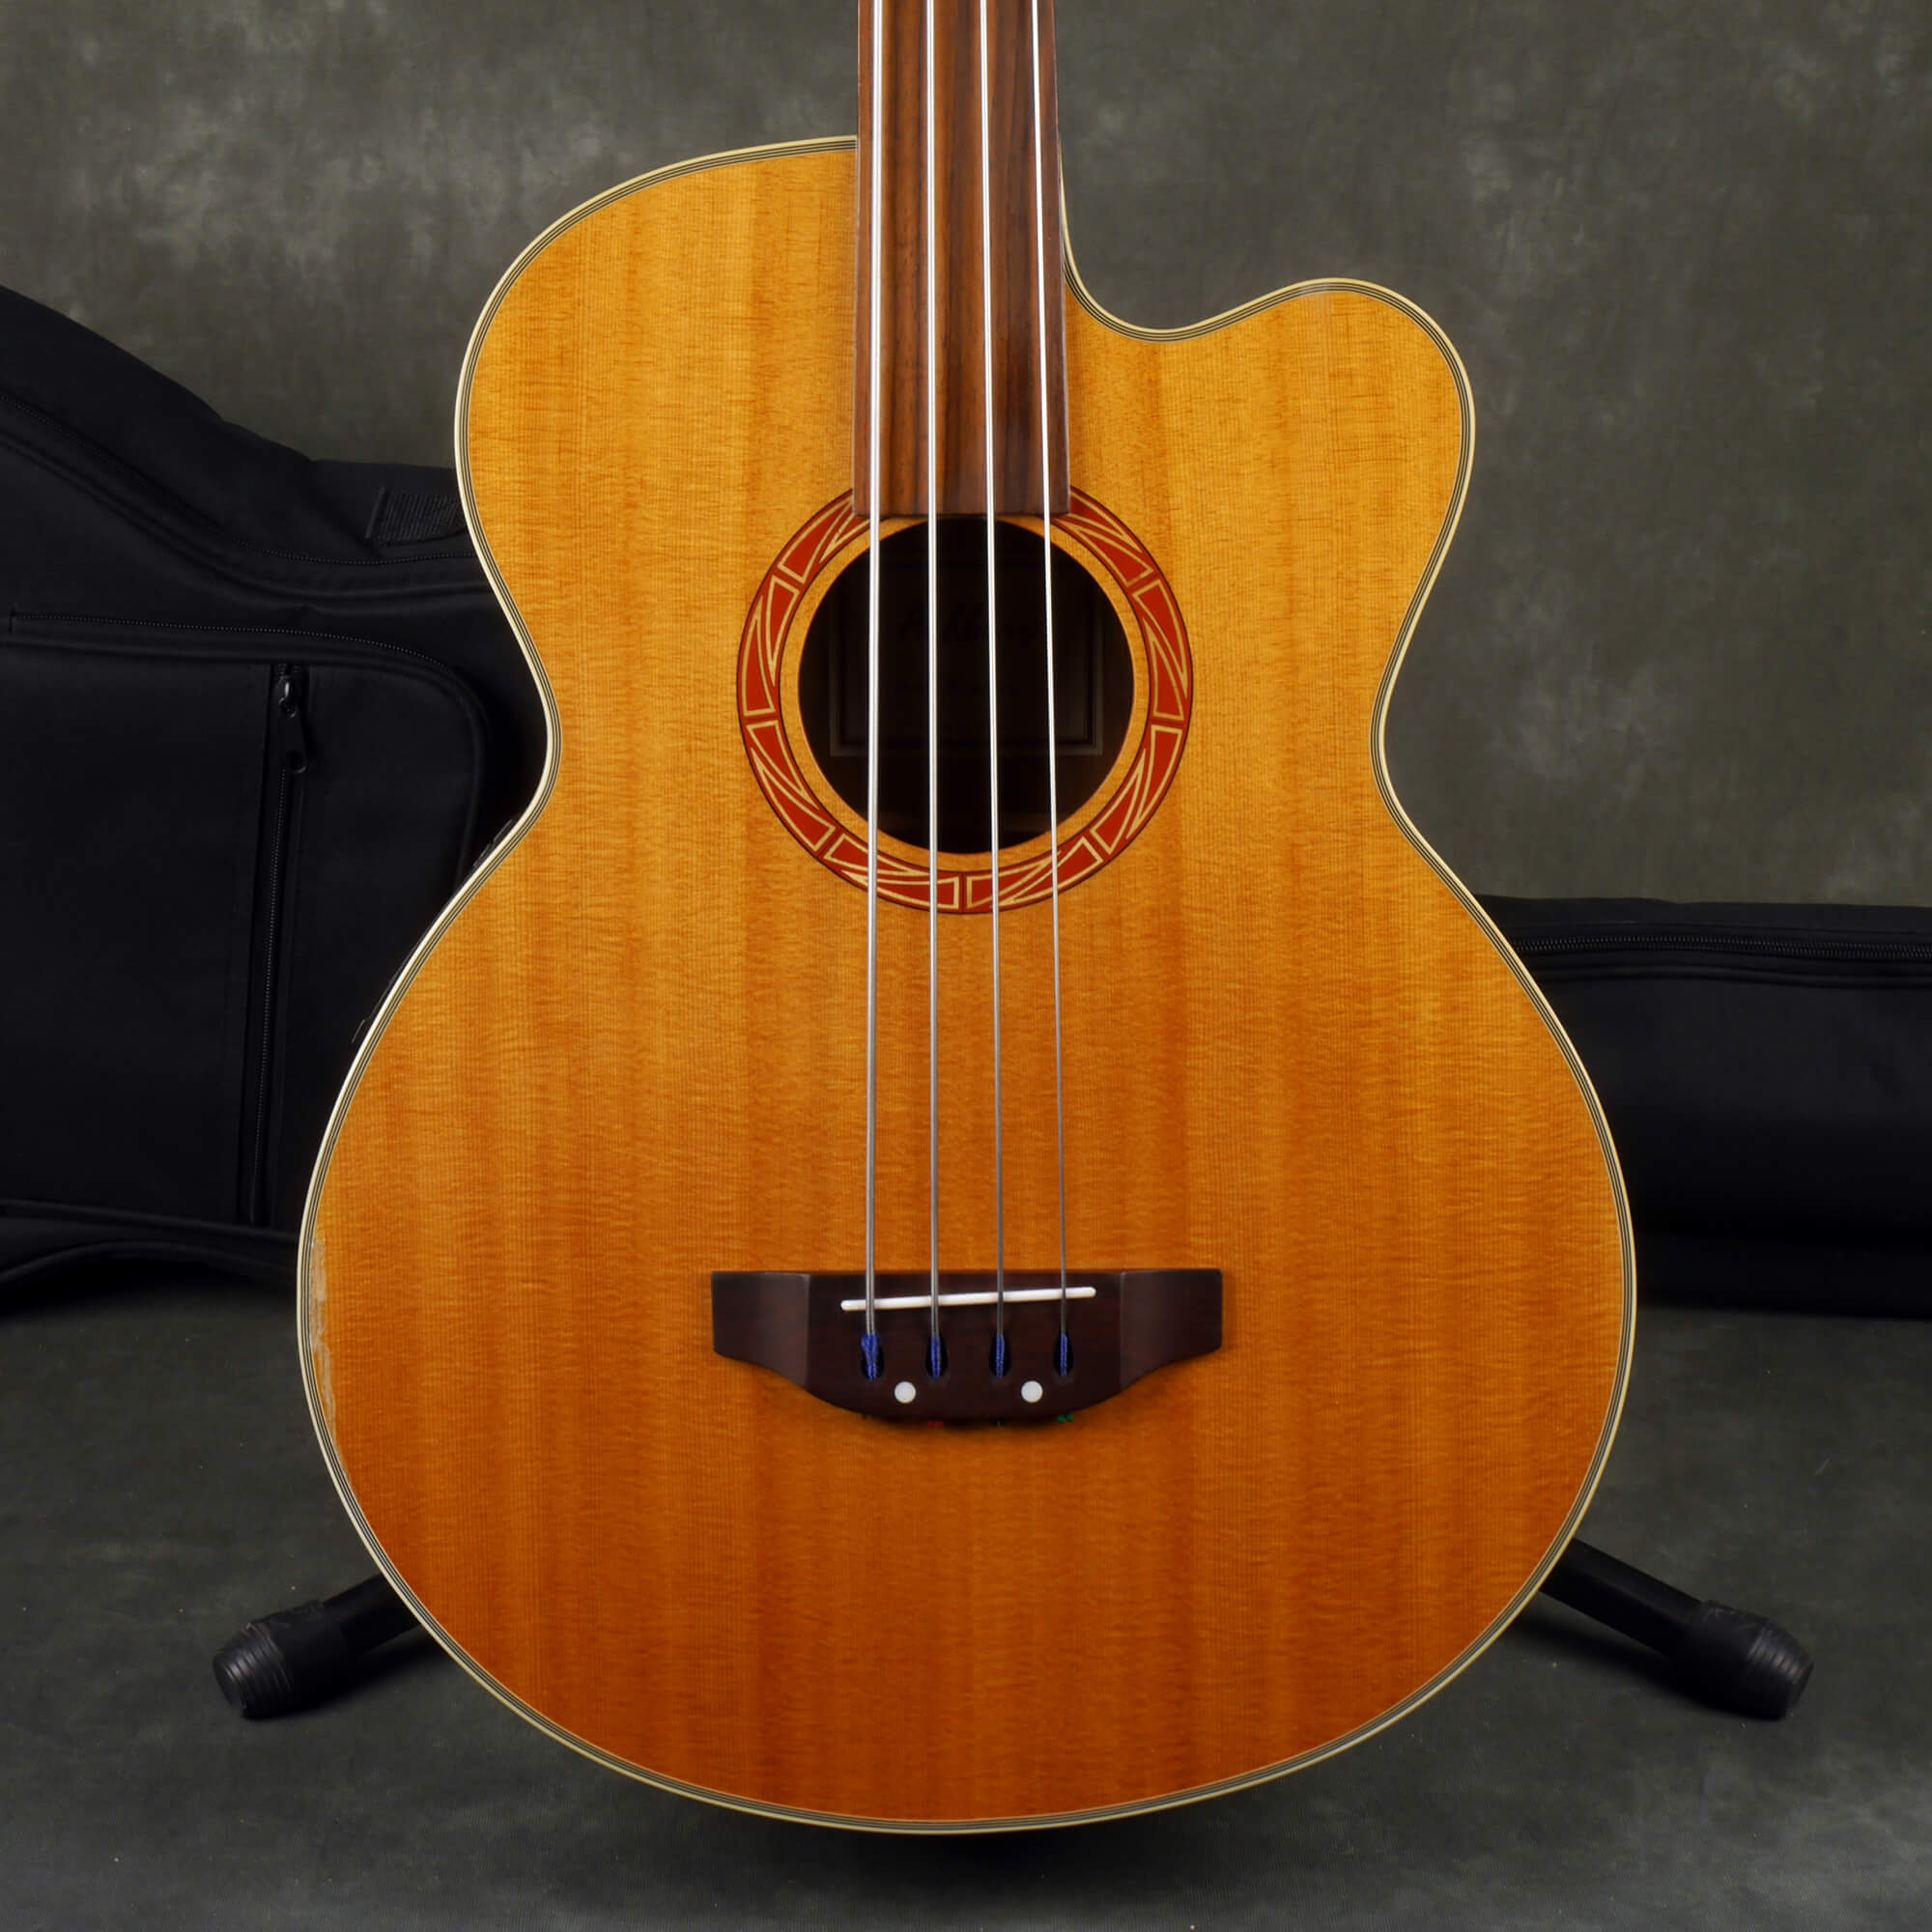 Ashbury GR5649 Fretless Electro-Acoustic Bass - Natural w/Gig Bag - 2nd Hand